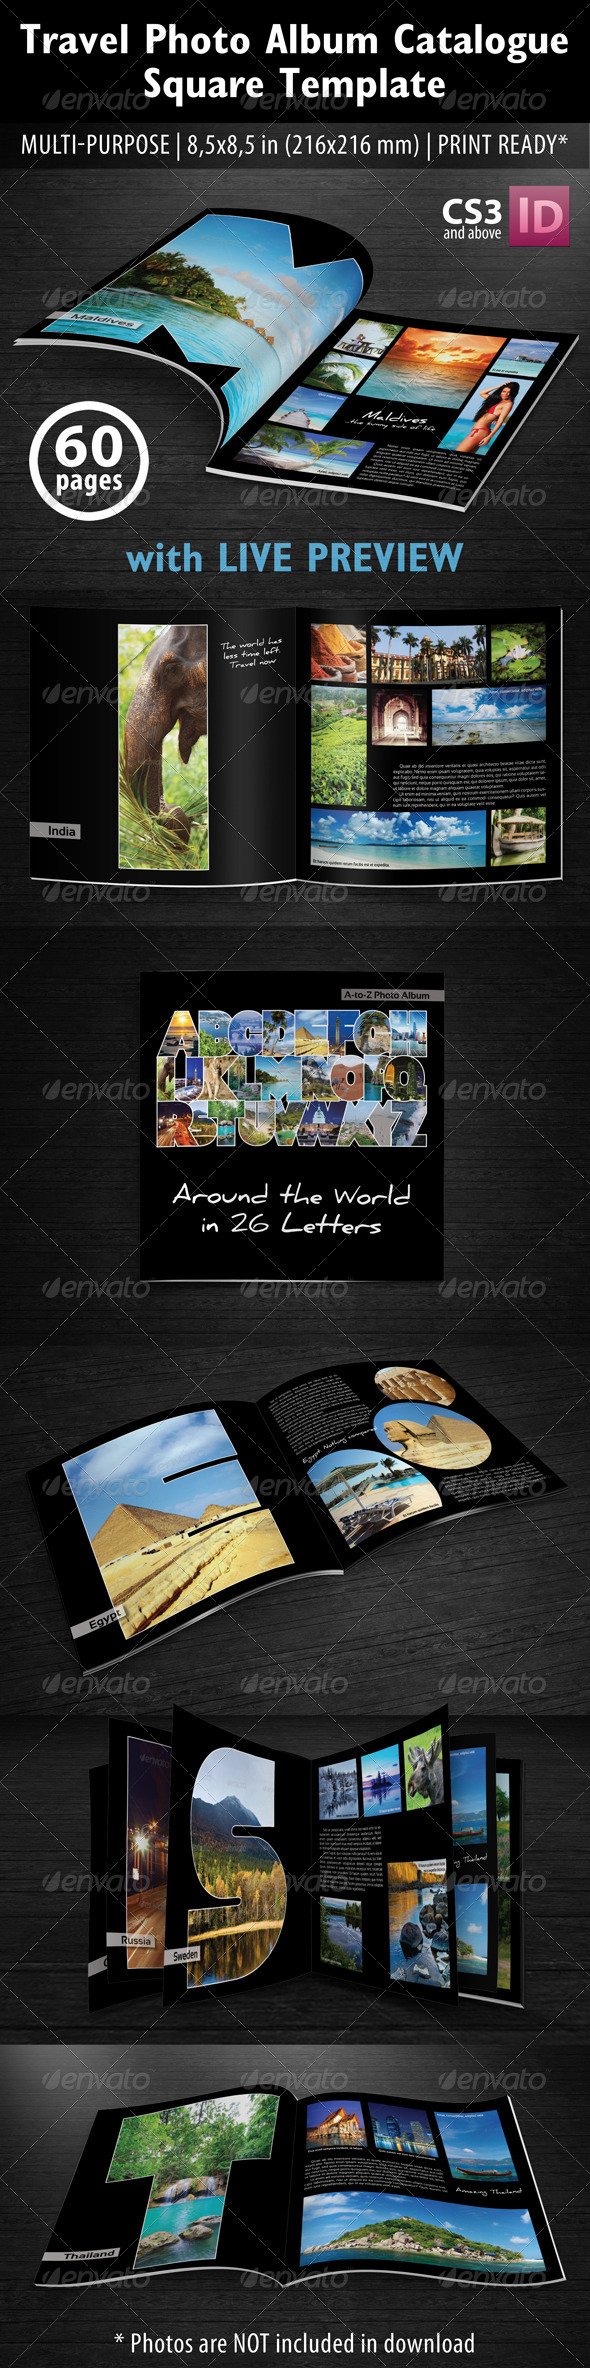 GraphicRiver Travel Photo Album Catlog Square Template 5398410